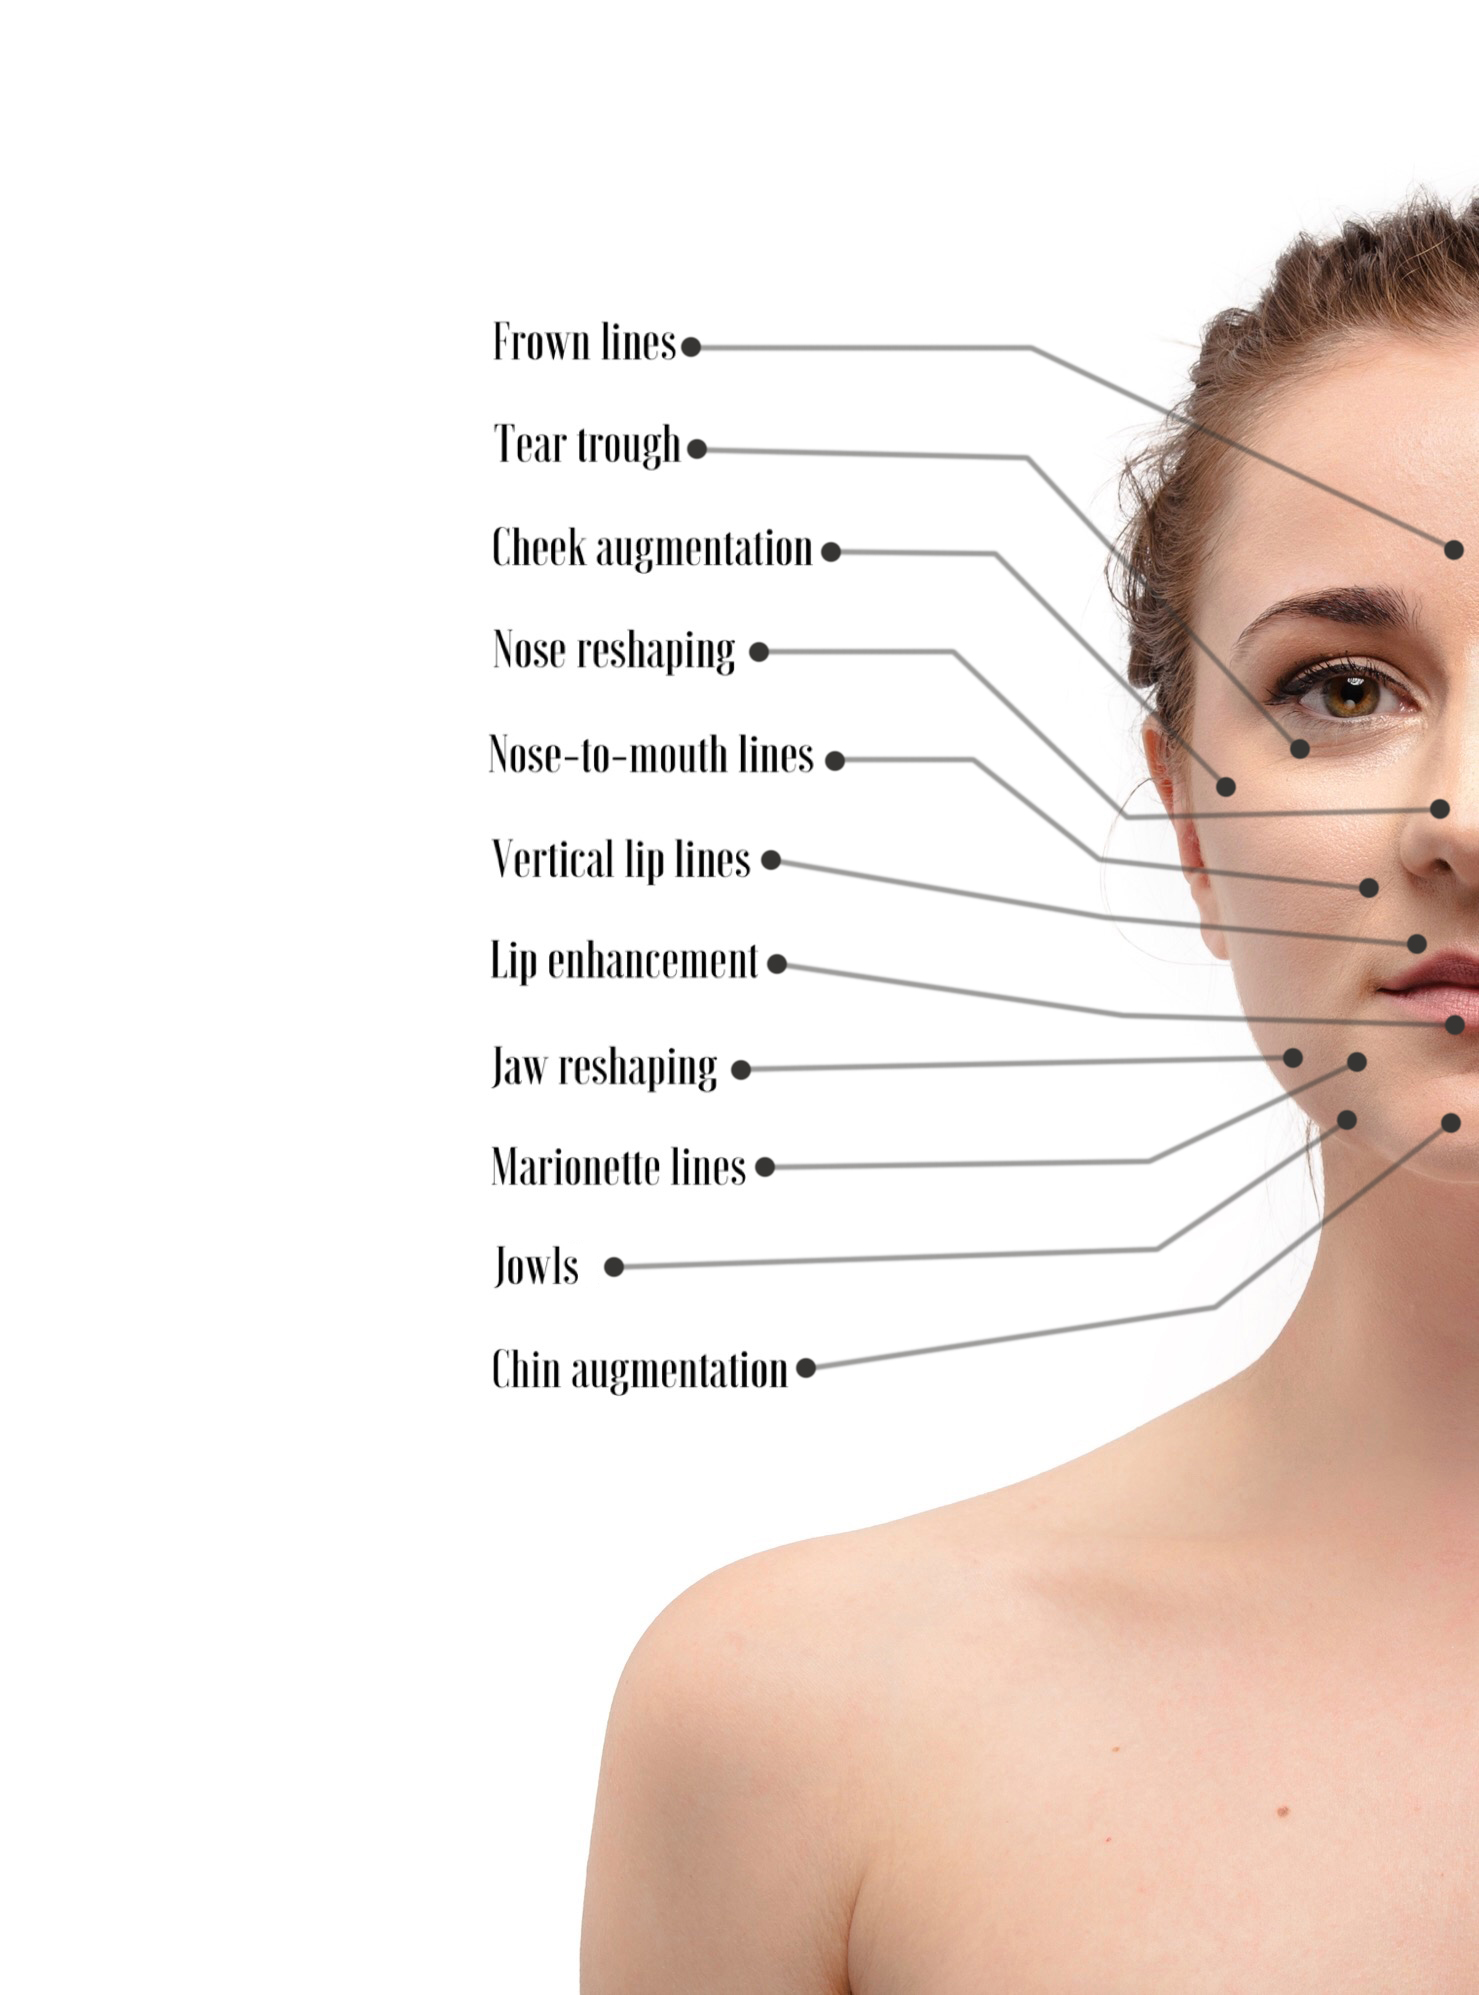 Dermal fillers Diagram.jpg